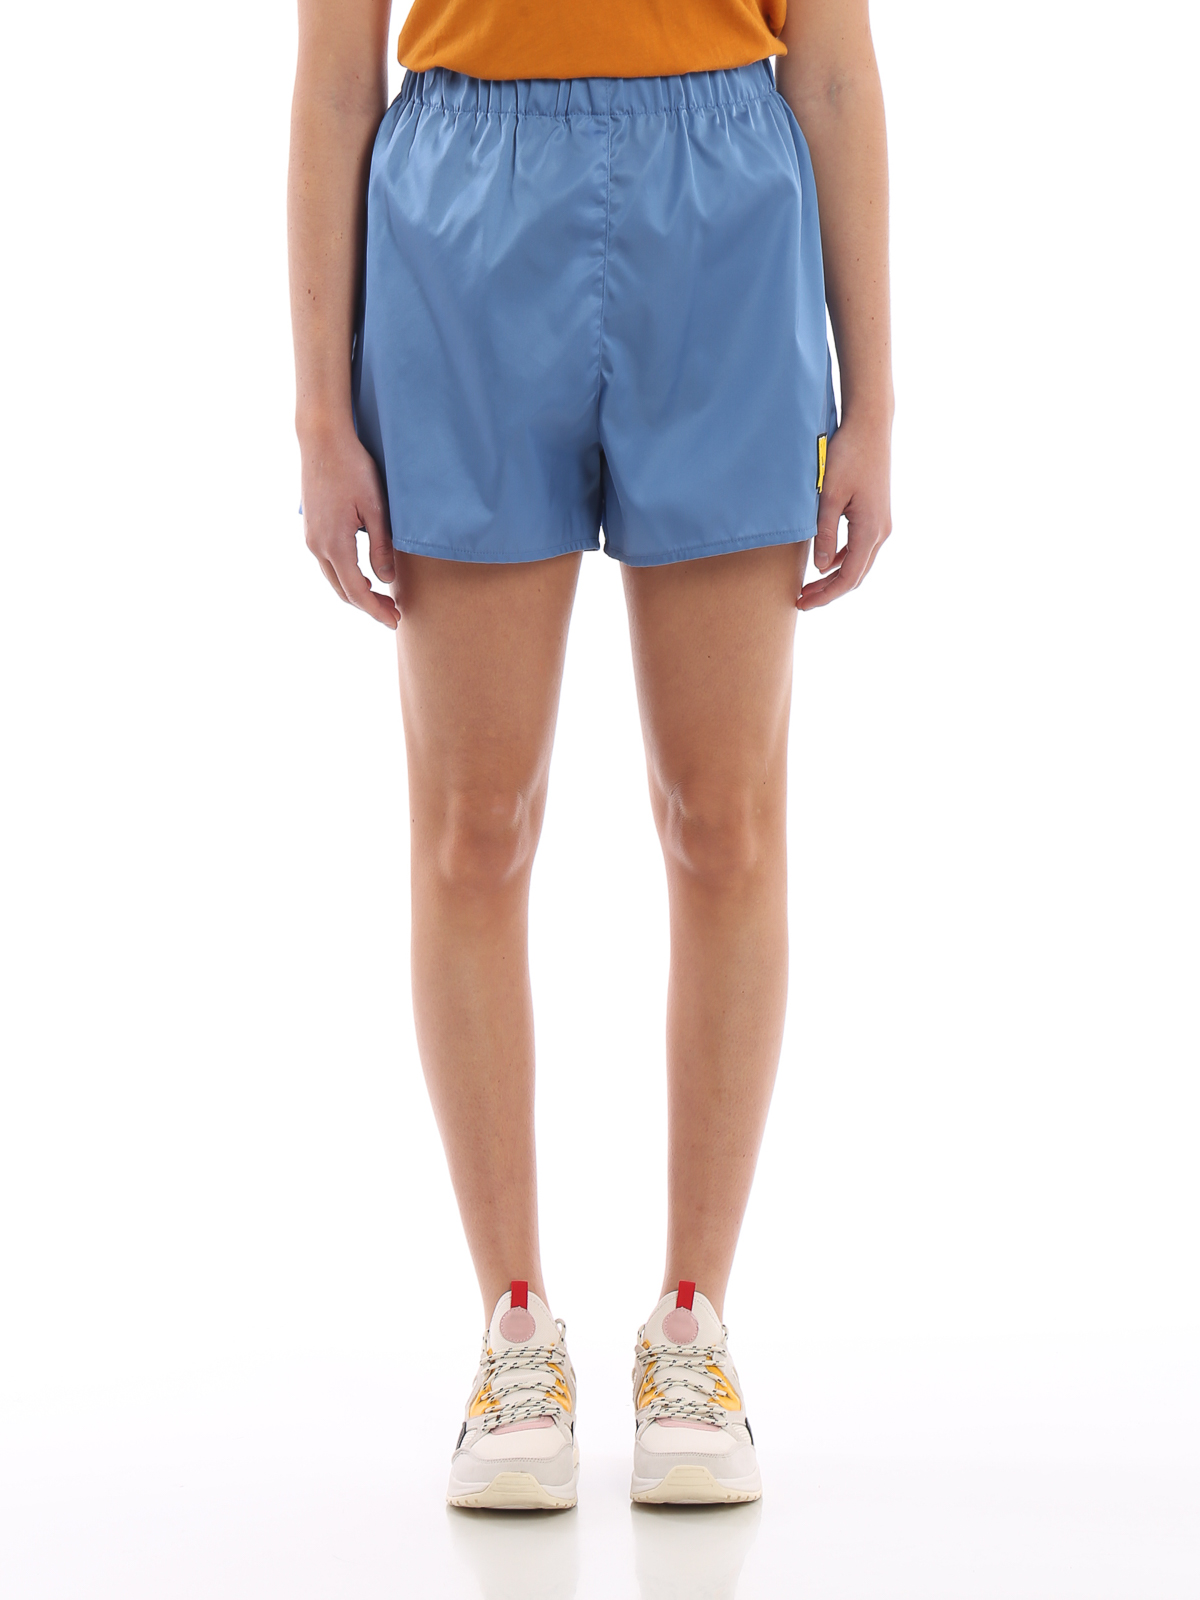 321c2c6e459 iKRIX-prada-trousers-shorts-light-nylon-gabardine-short-pants-00000147960f00s013.jpg